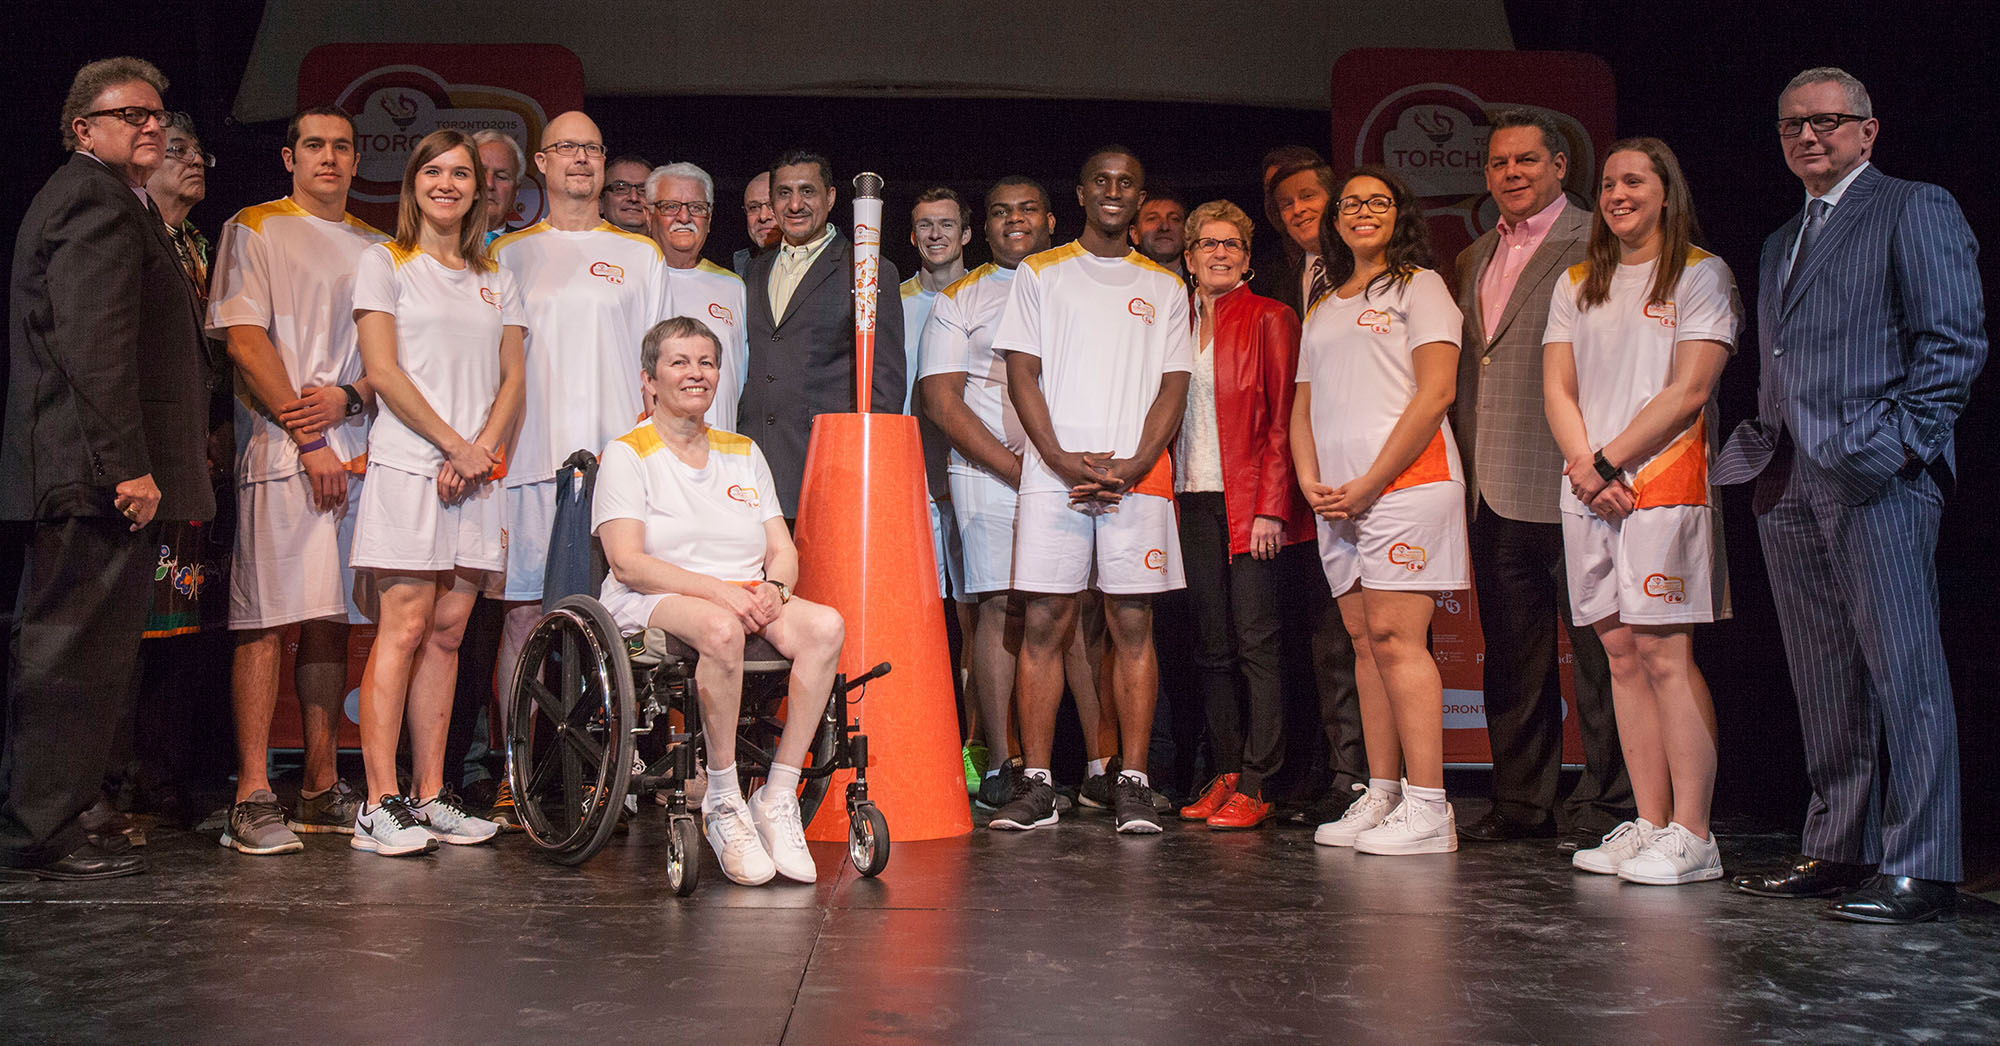 TO2015 and its relay partners announced the first 10 torchbearers, and unveiled the torch and torchbearer uniform. (CNW Group/Toronto 2015 Pan/Parapan American Games)